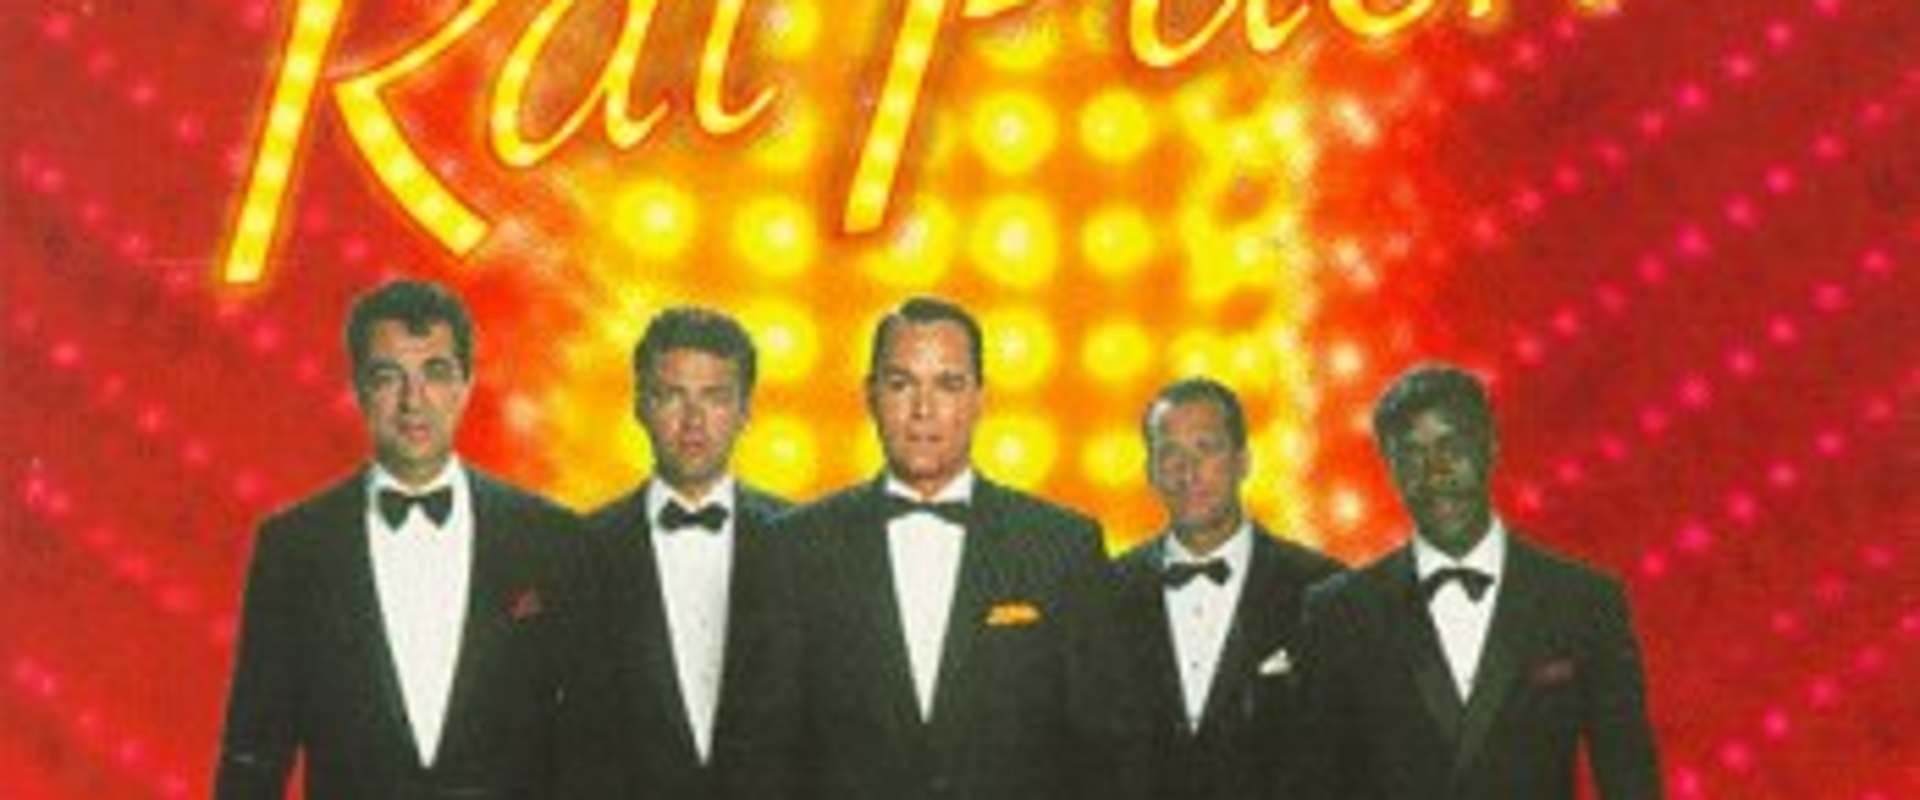 The Rat Pack background 2